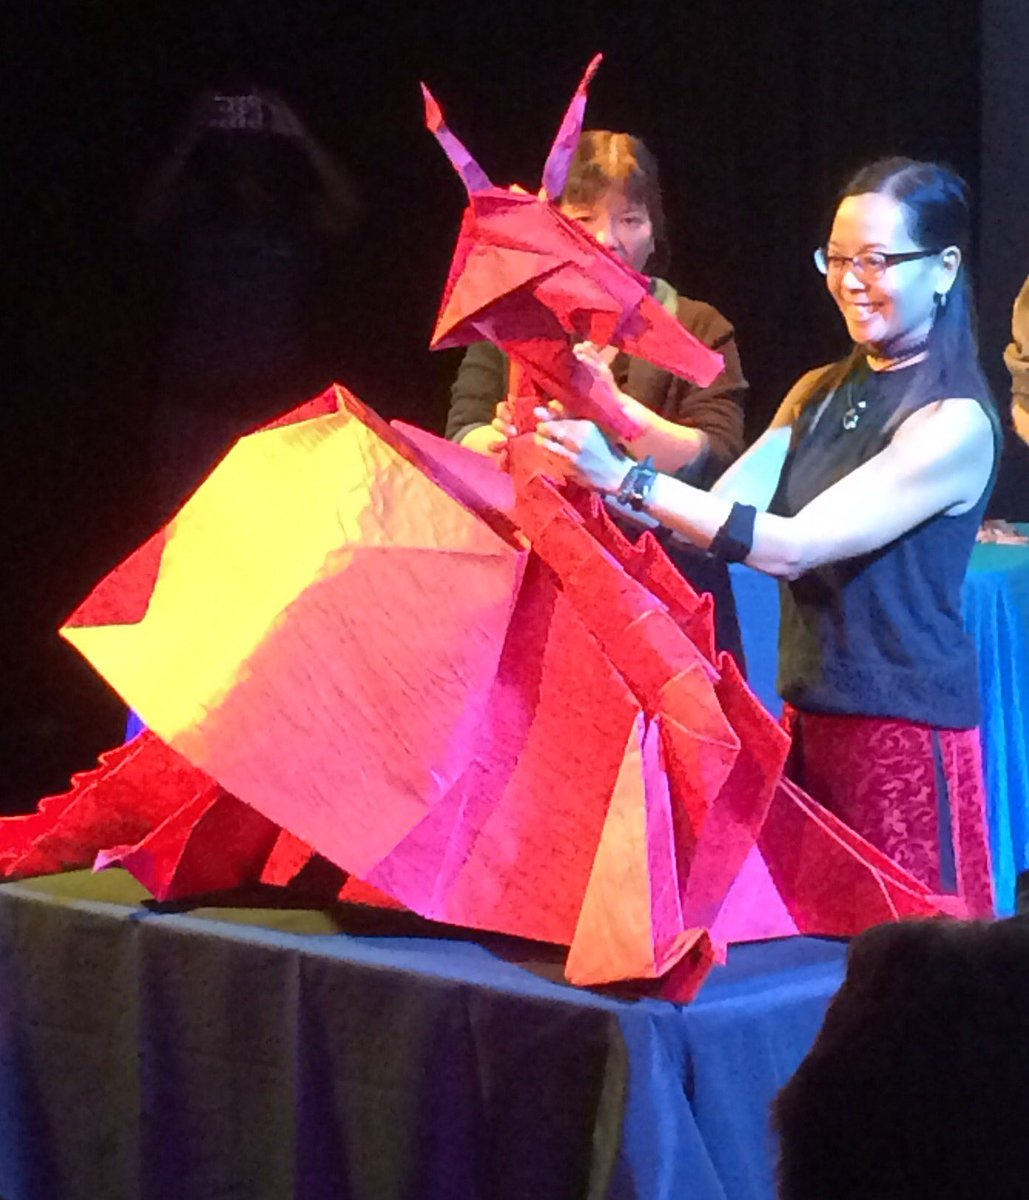 ABD Music On Twitter GIANT Origami Dragon Made ArtsCanmore By Tessa AlbertaCulture CanadasNAC